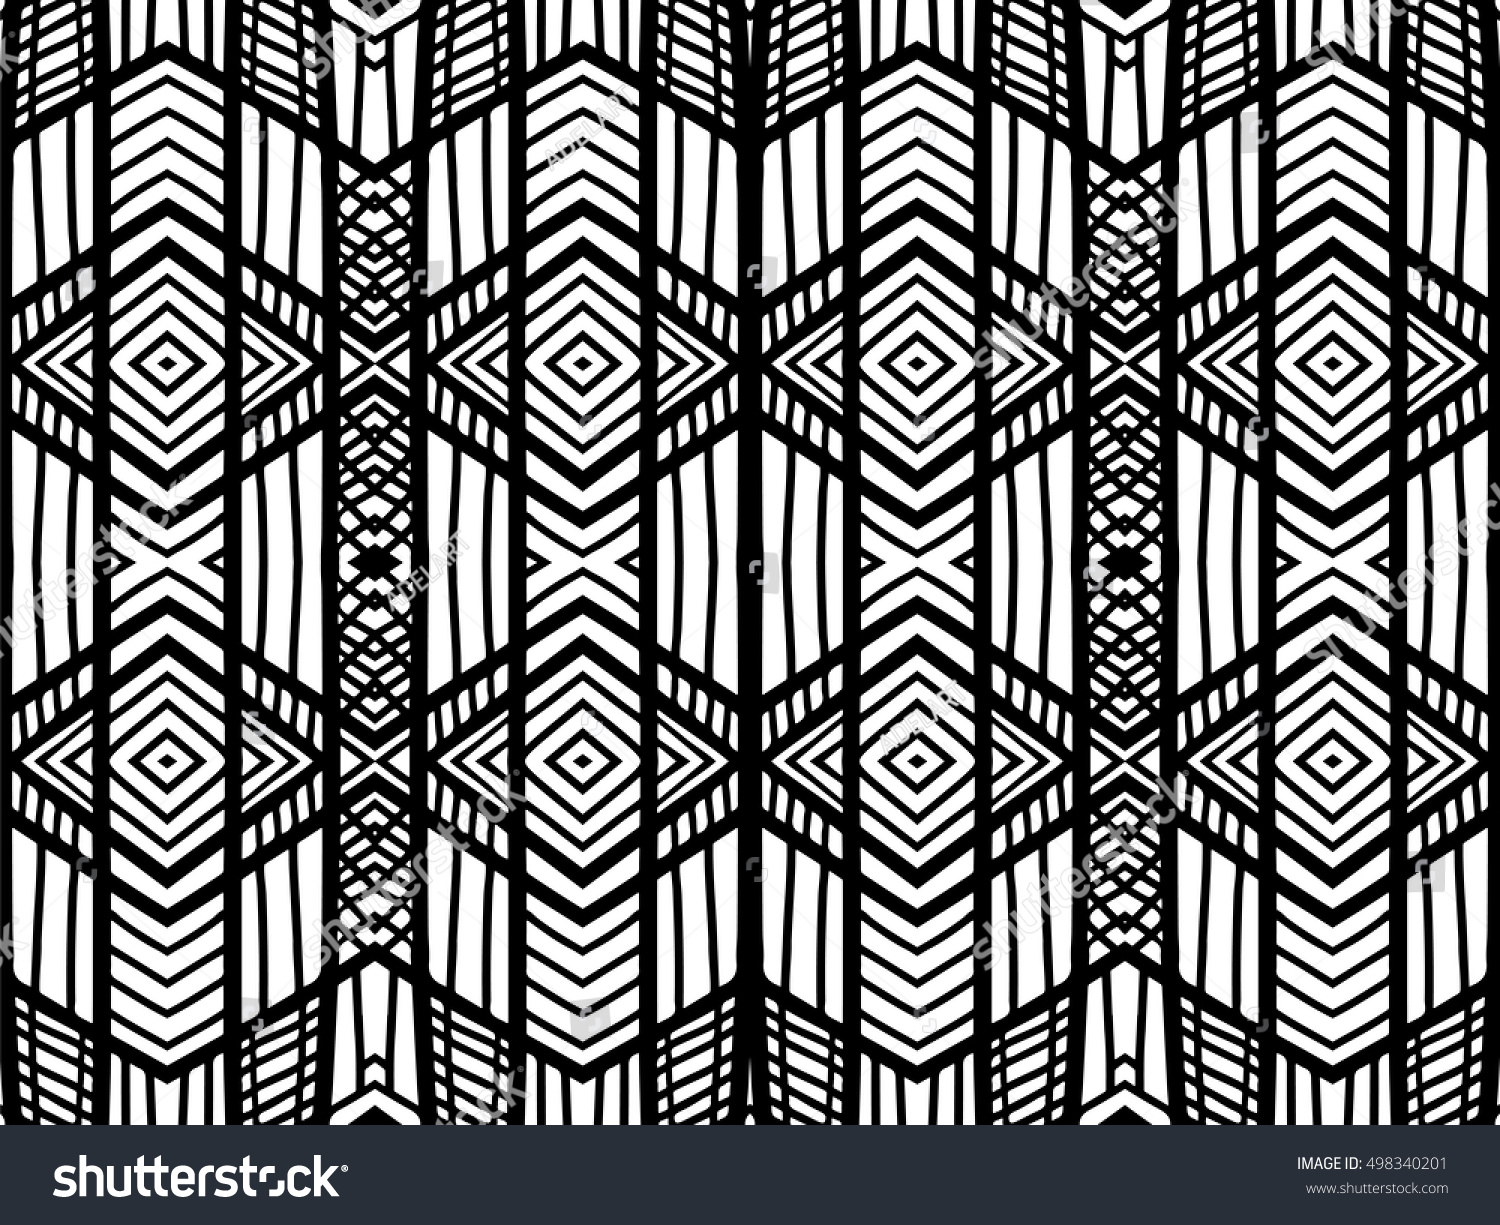 Abstract Background Black White Texture Geometric Stock Vector ... for Geometric Shapes Design Black And White  599kxo